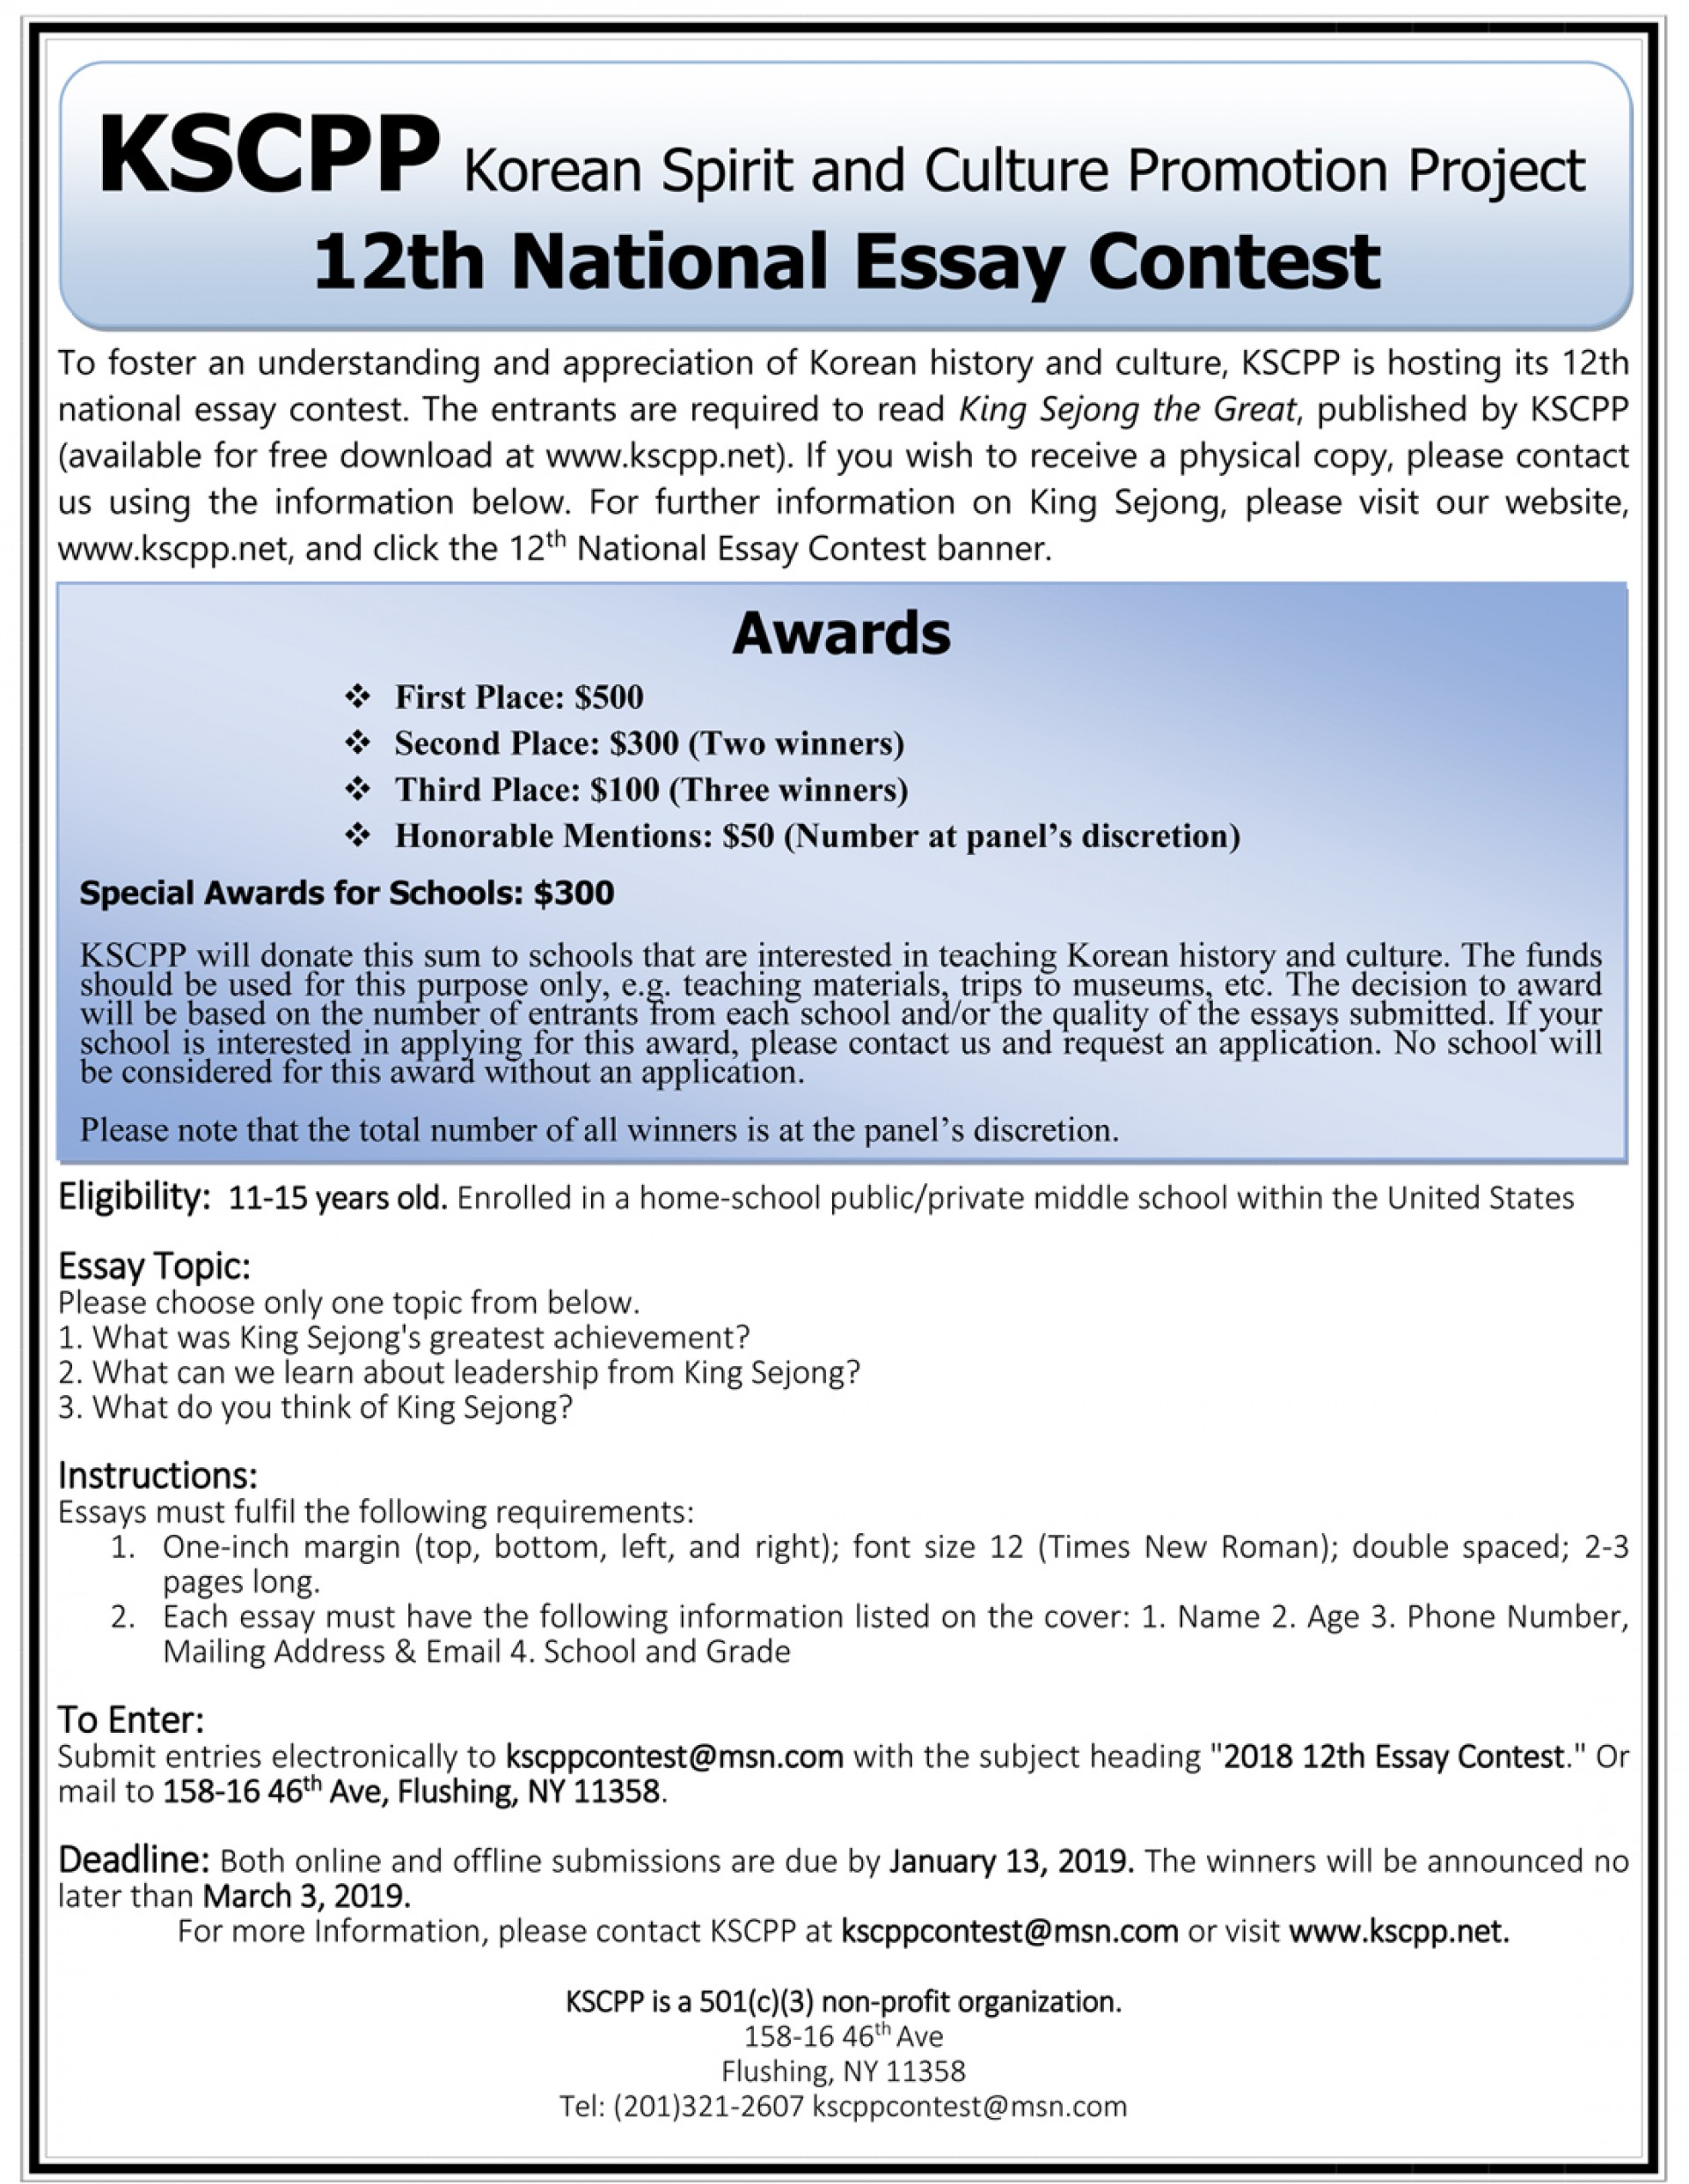 005 Essay Example Contest Amazing Writing High School Contests For Seniors 2018 1920